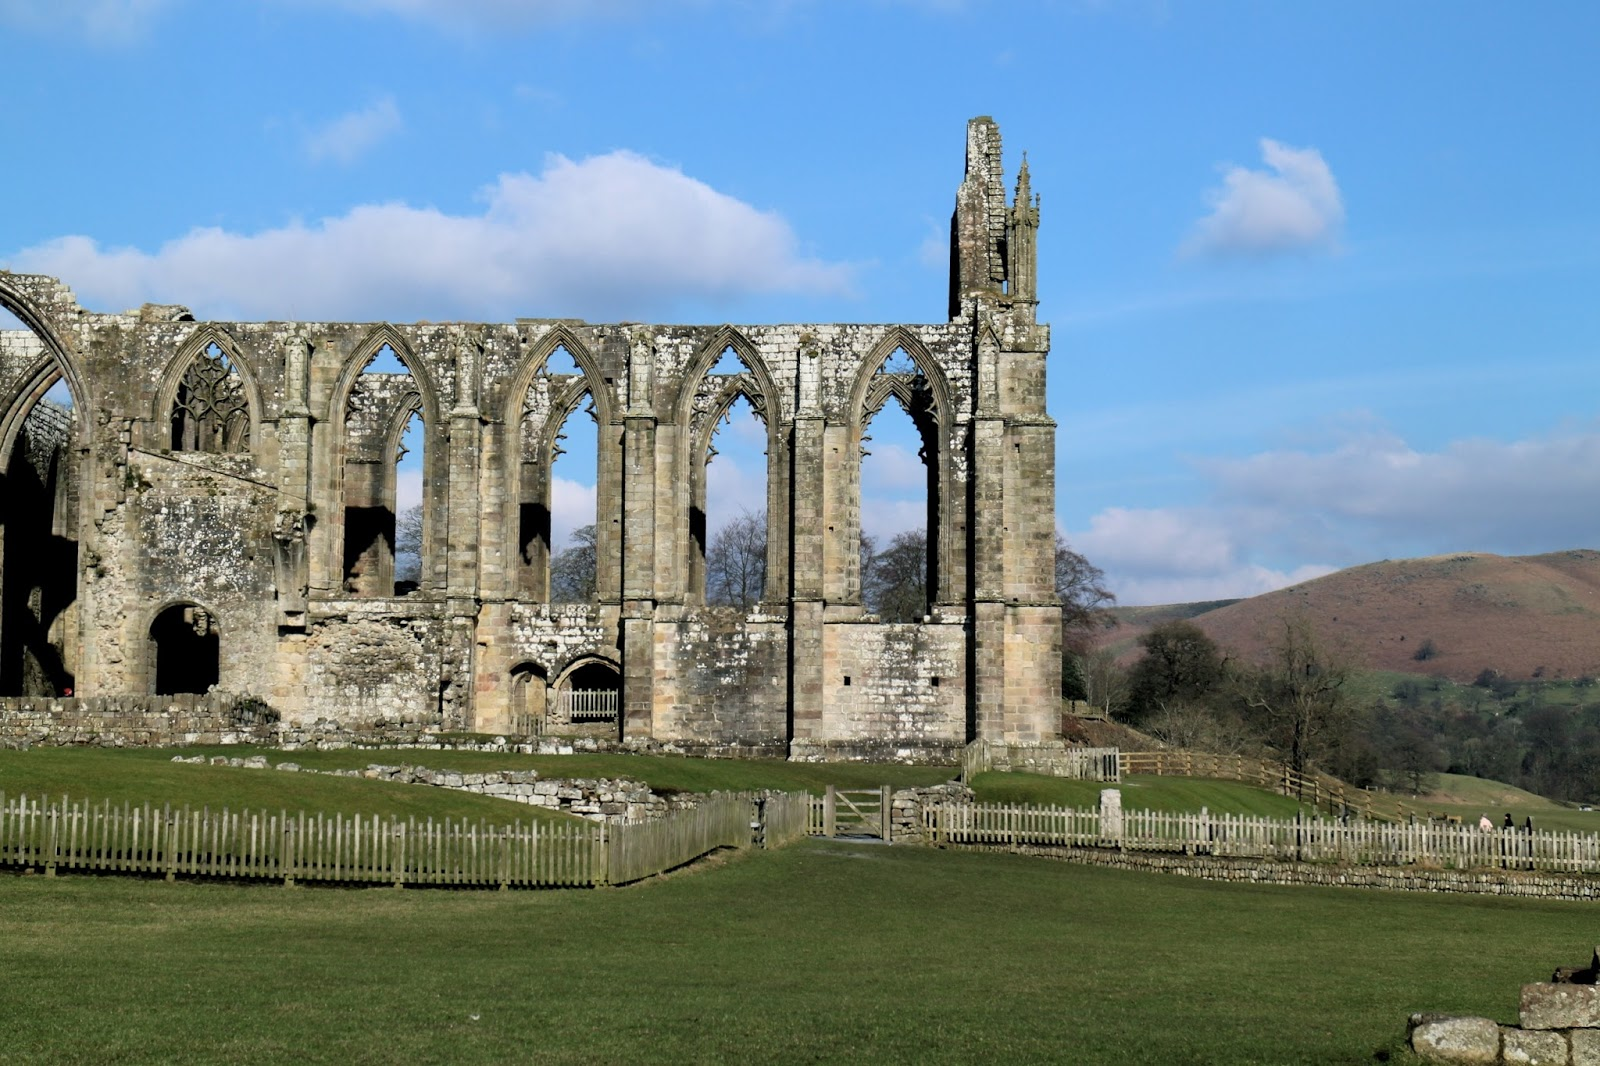 A view of the Bolton Priory and Ruins with blue skies in Spring